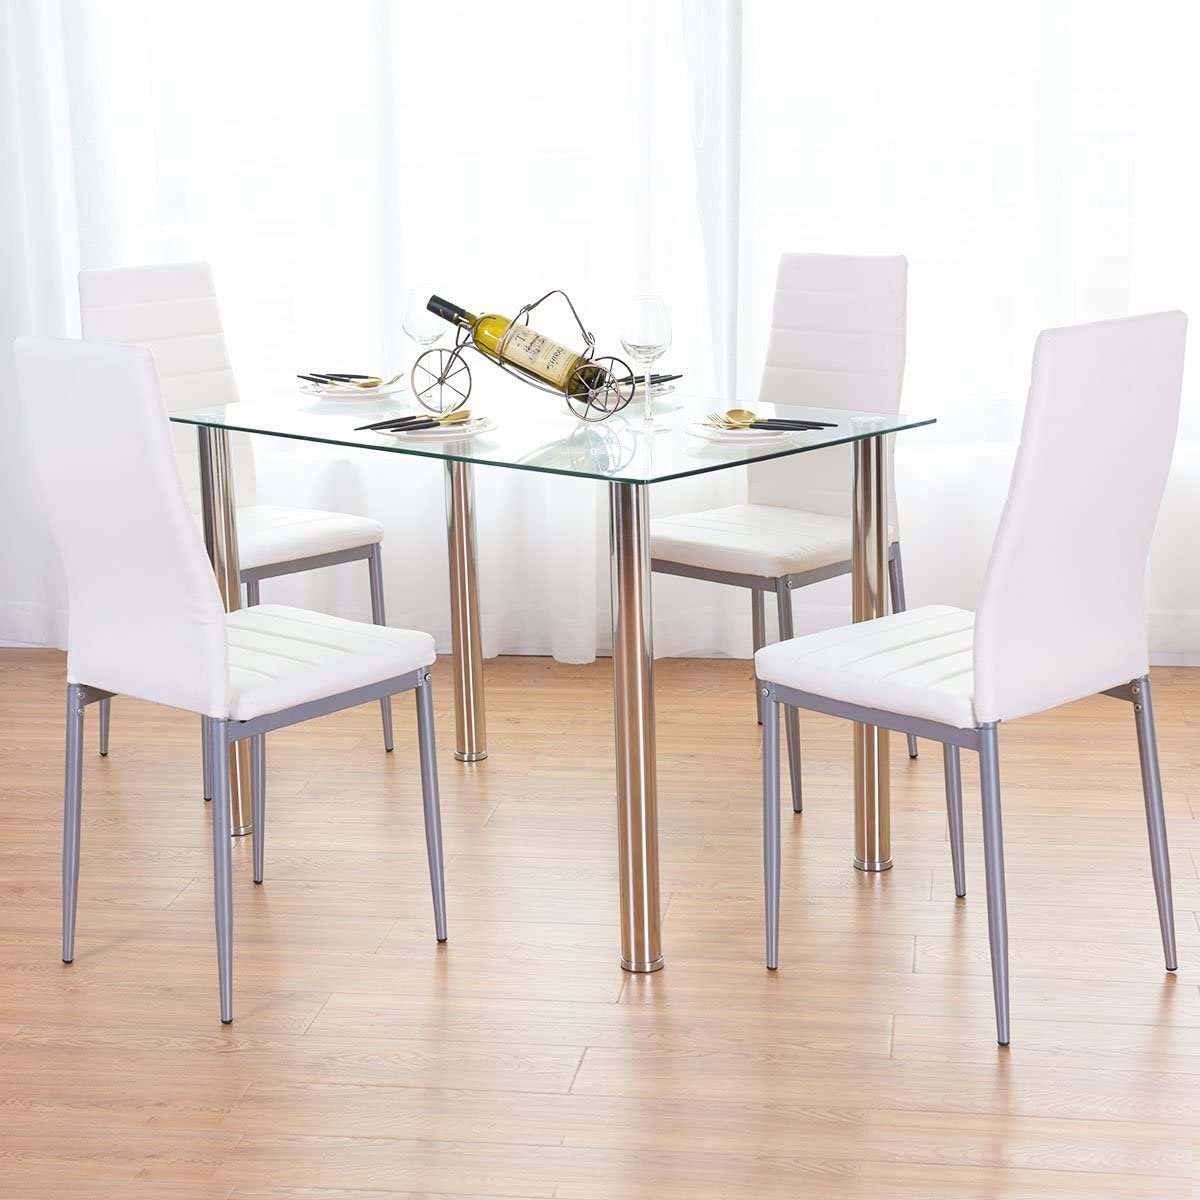 Amazon Com Tangkula Dining Table Set 5 Pcs Modern Tempered Glass Top Pvc Leather Chair Dining Table And Chairs Set Dining Room Kitchen Furniture White Table Chair Sets